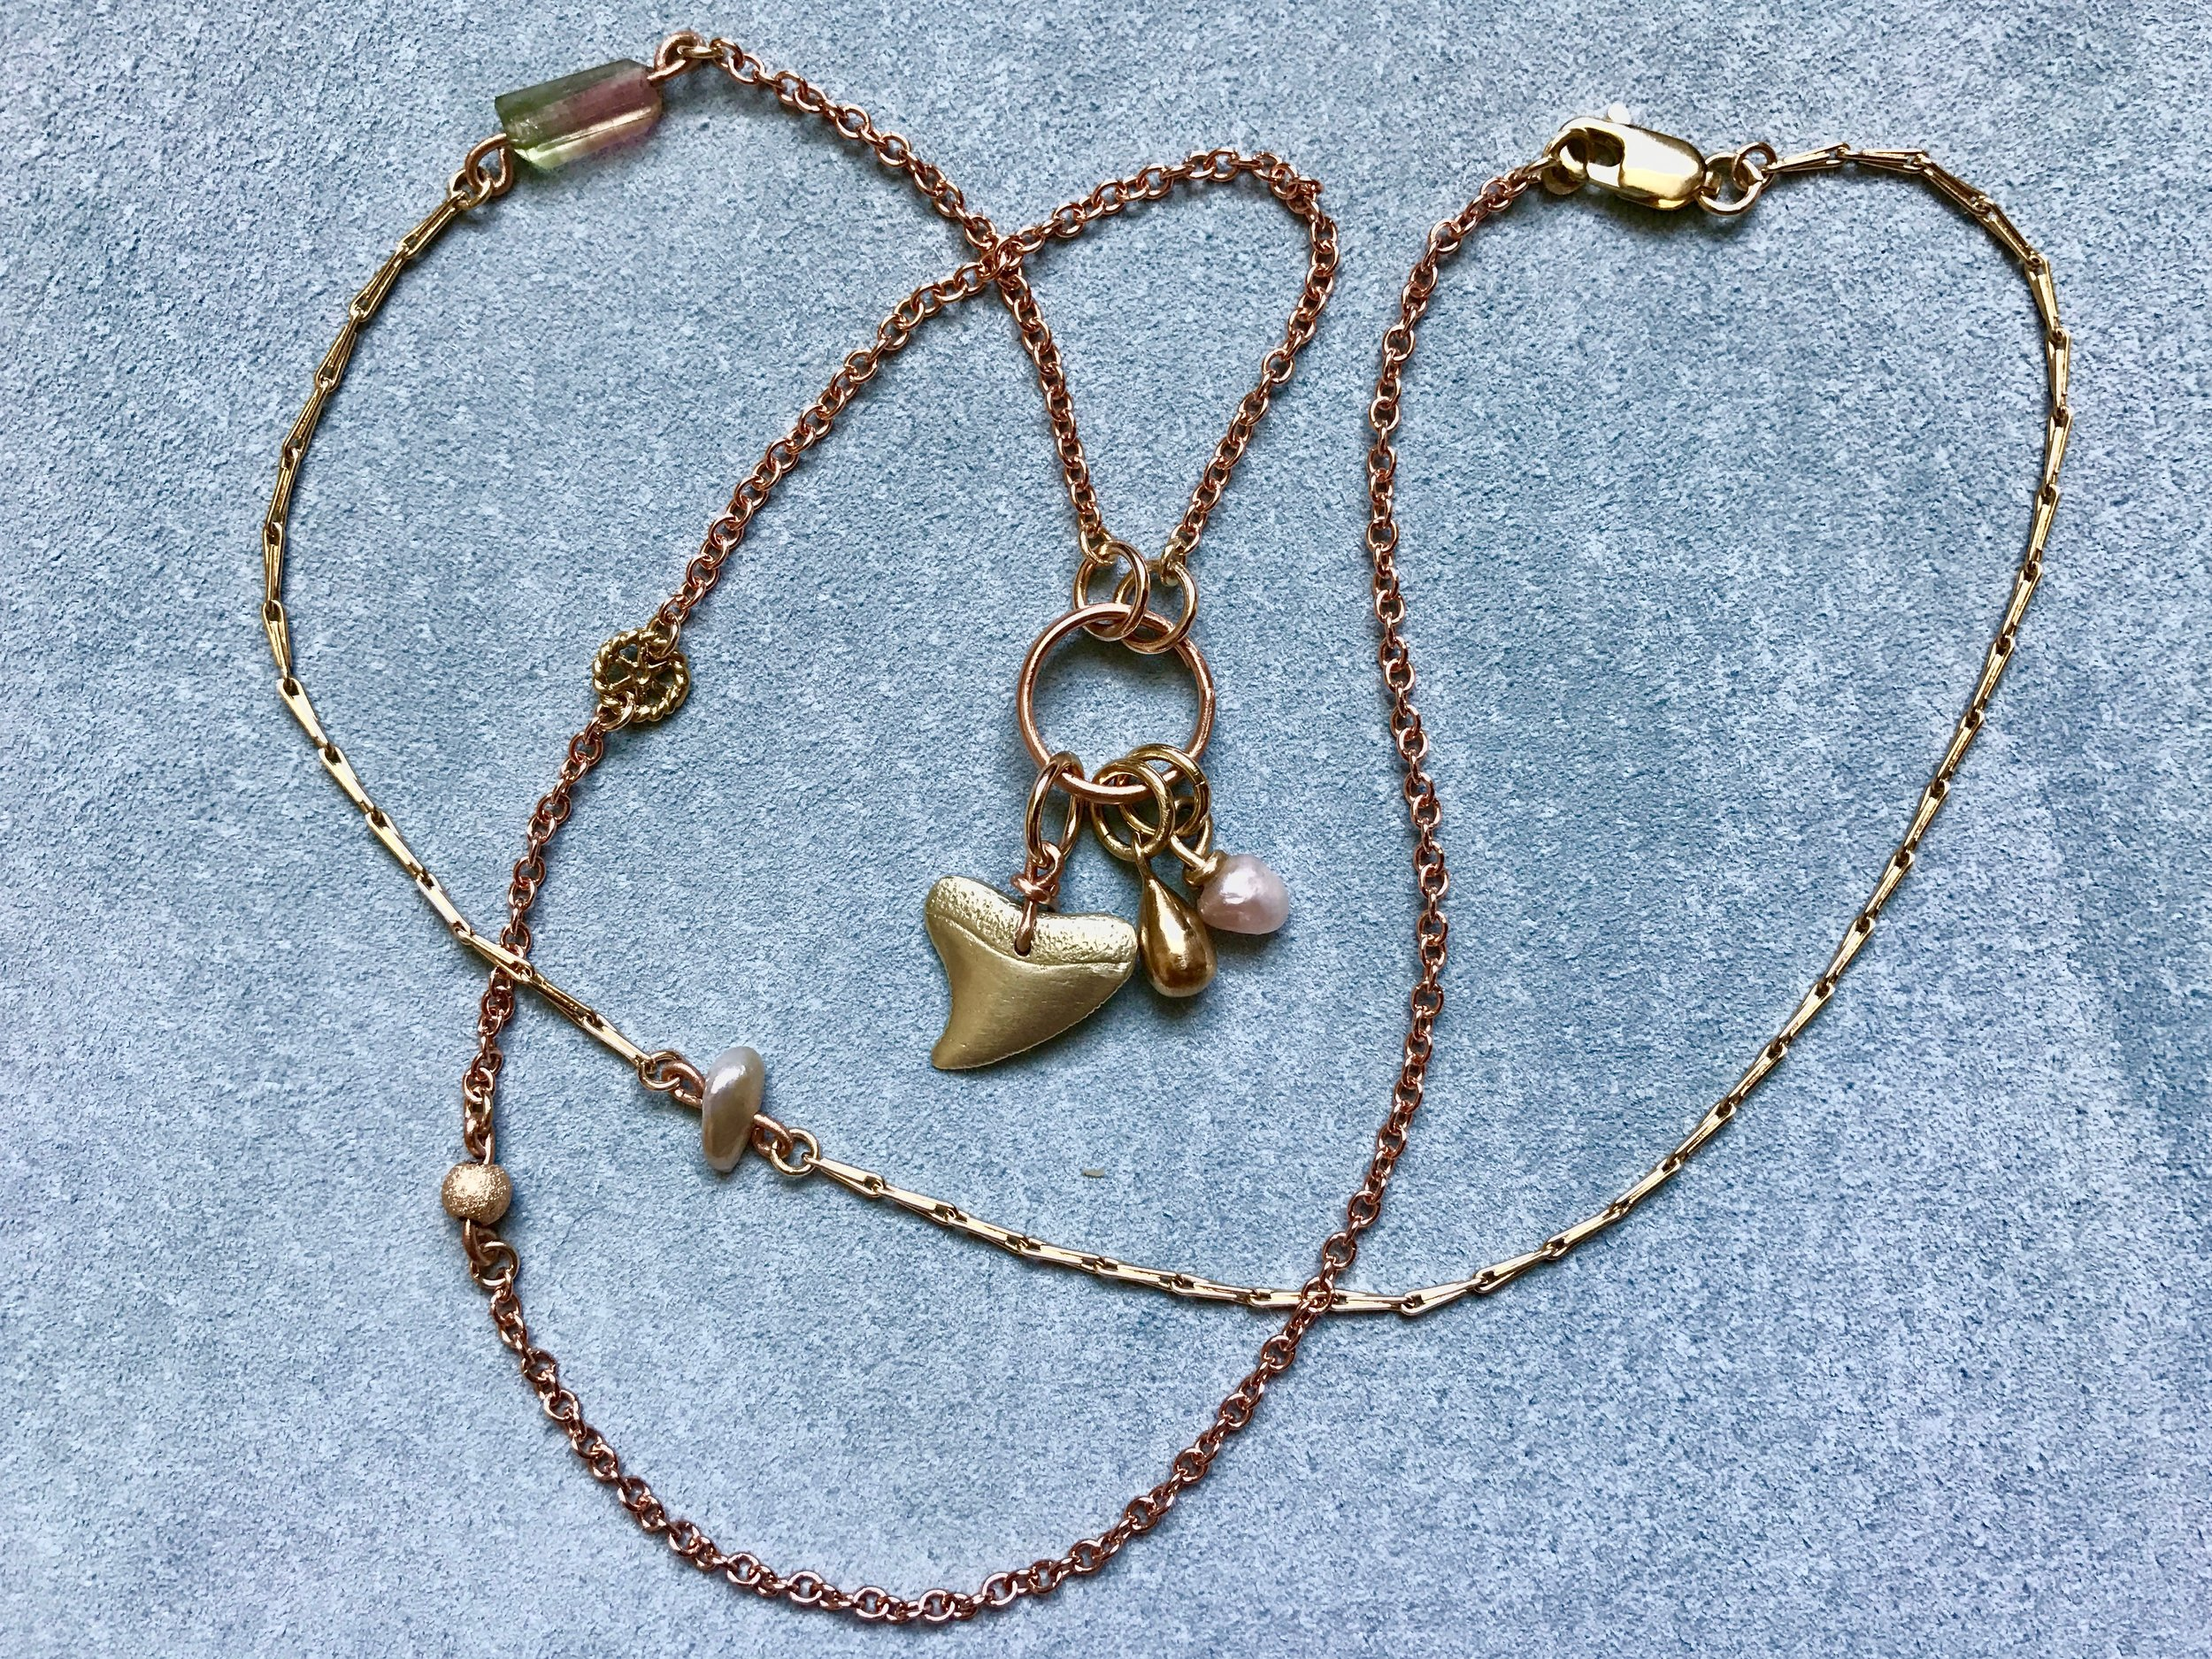 MIXED CHAIN NECKLACE WITH SHARKS TOOTH, TEARDROP AND MINI MISSISSIPPI PEARL